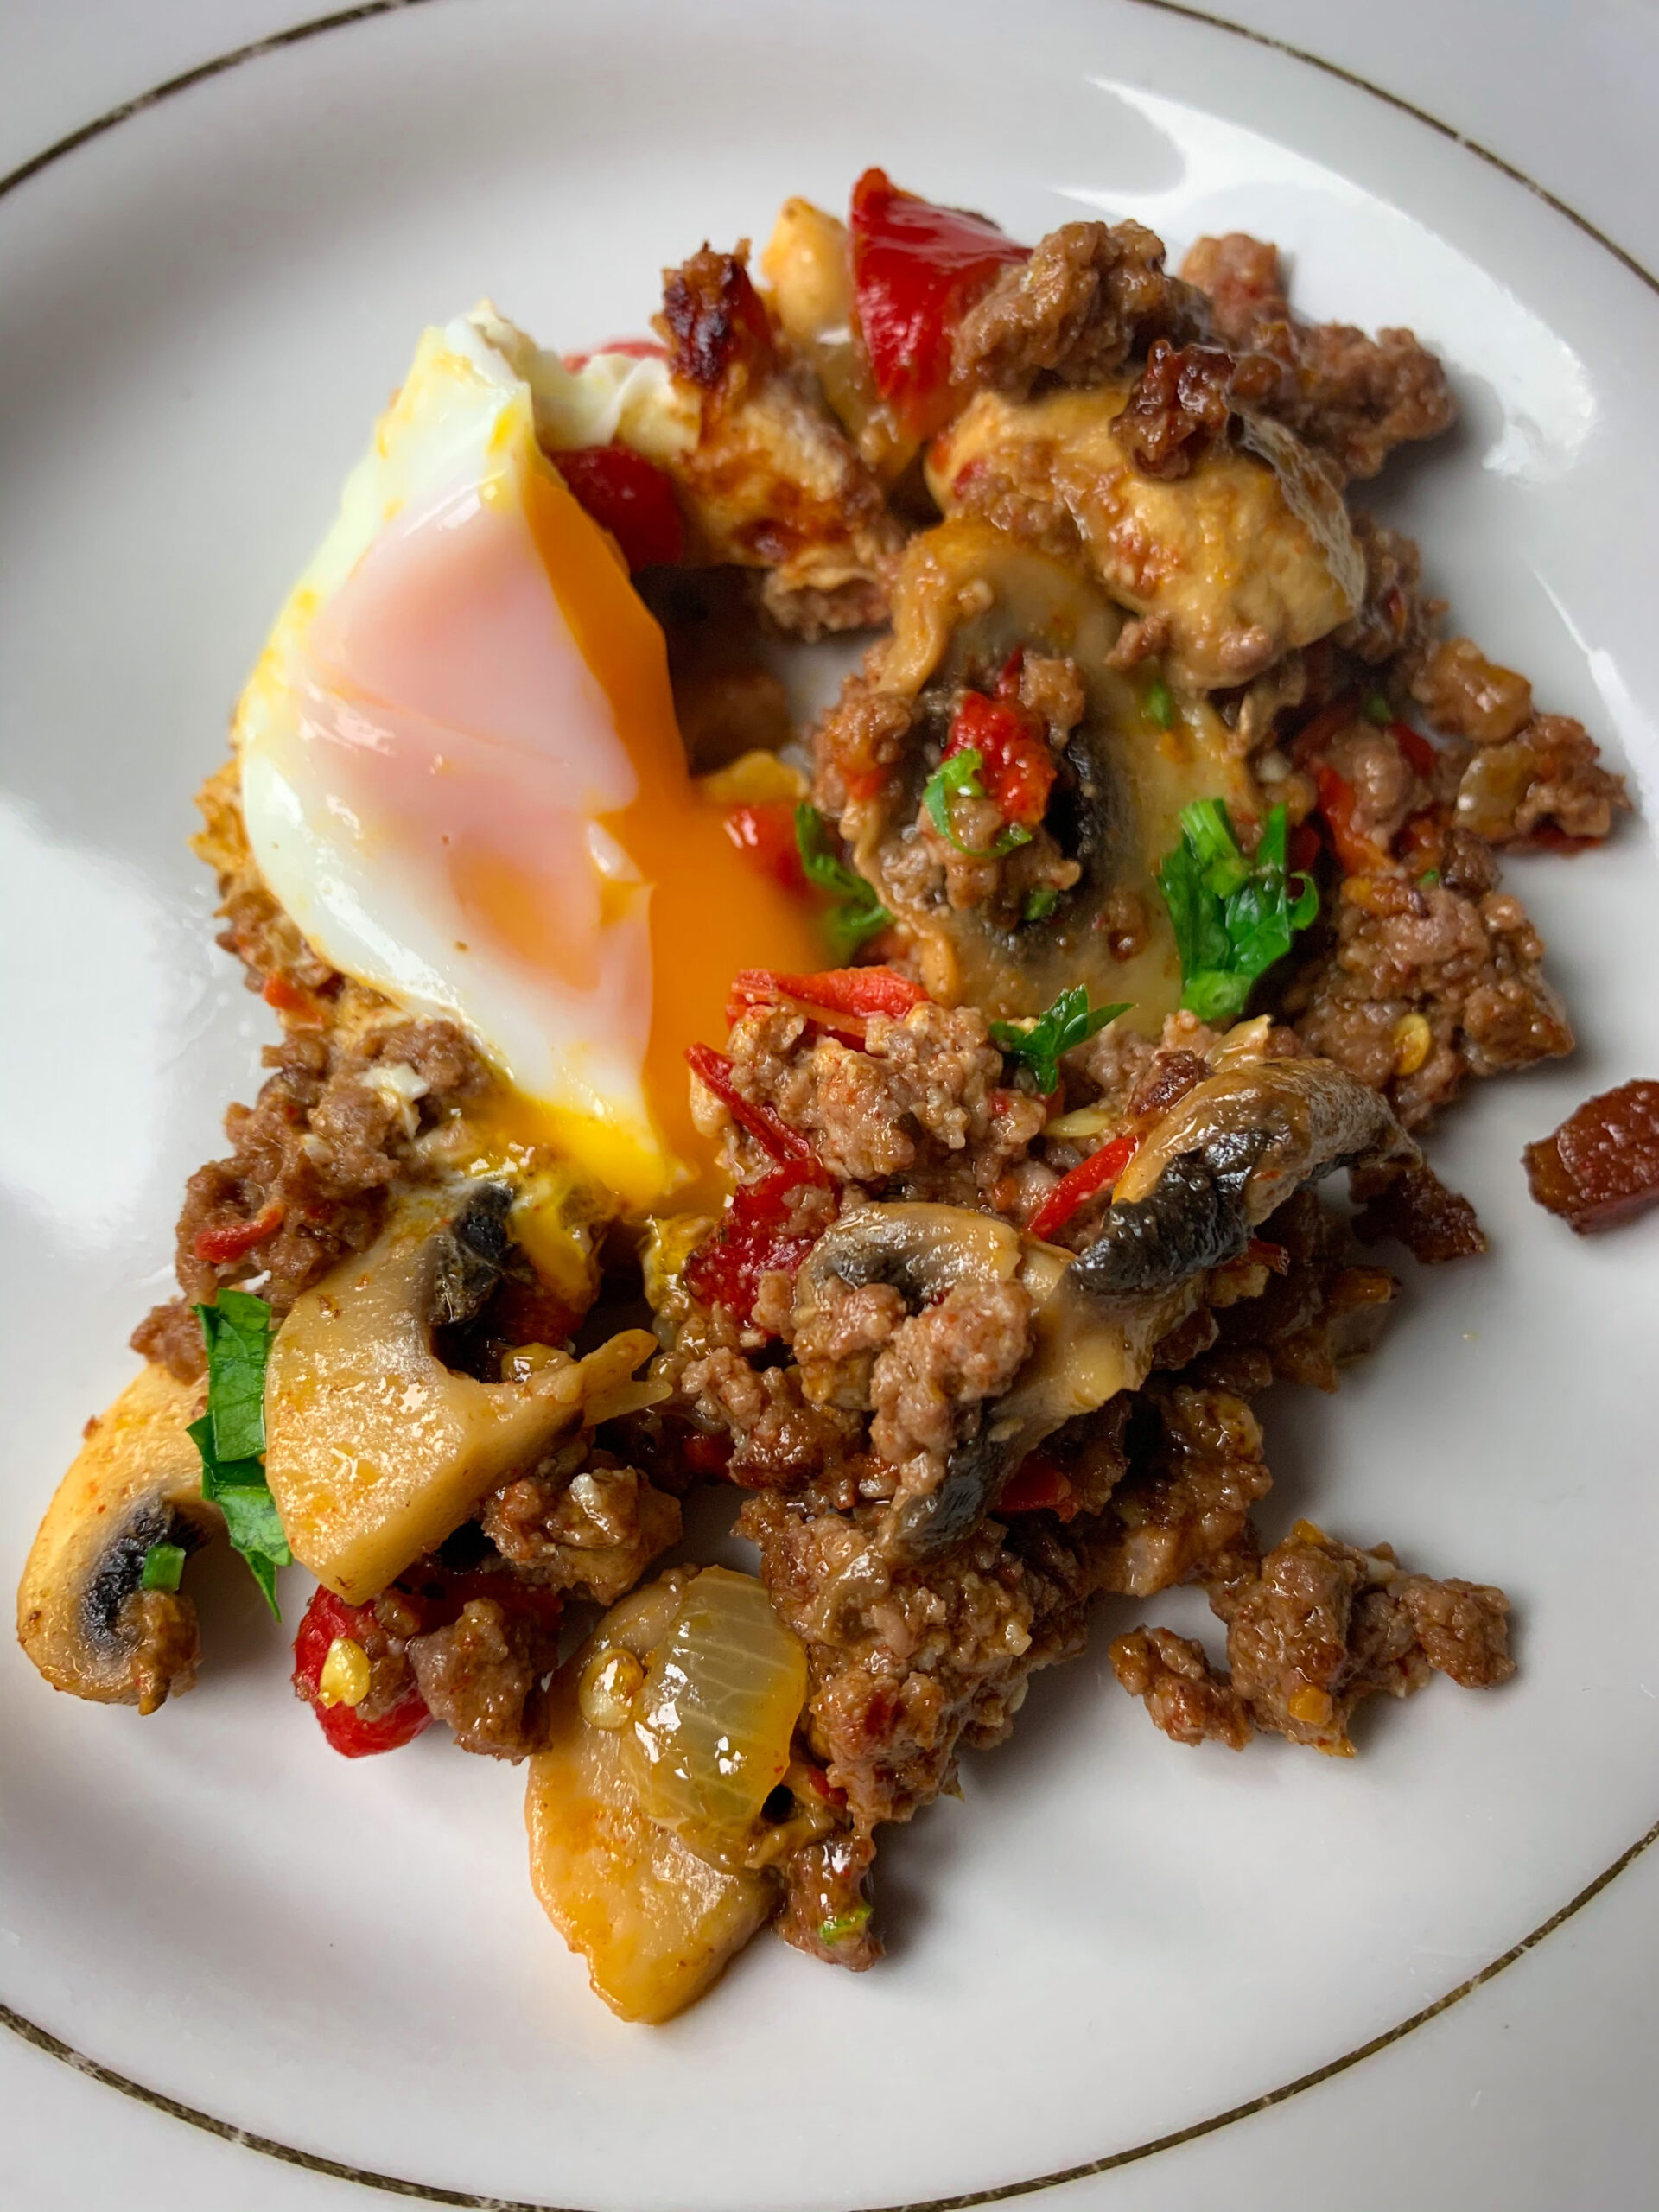 Picture of a plate with ground beef hash with feta cheese, mushrooms and capsicums